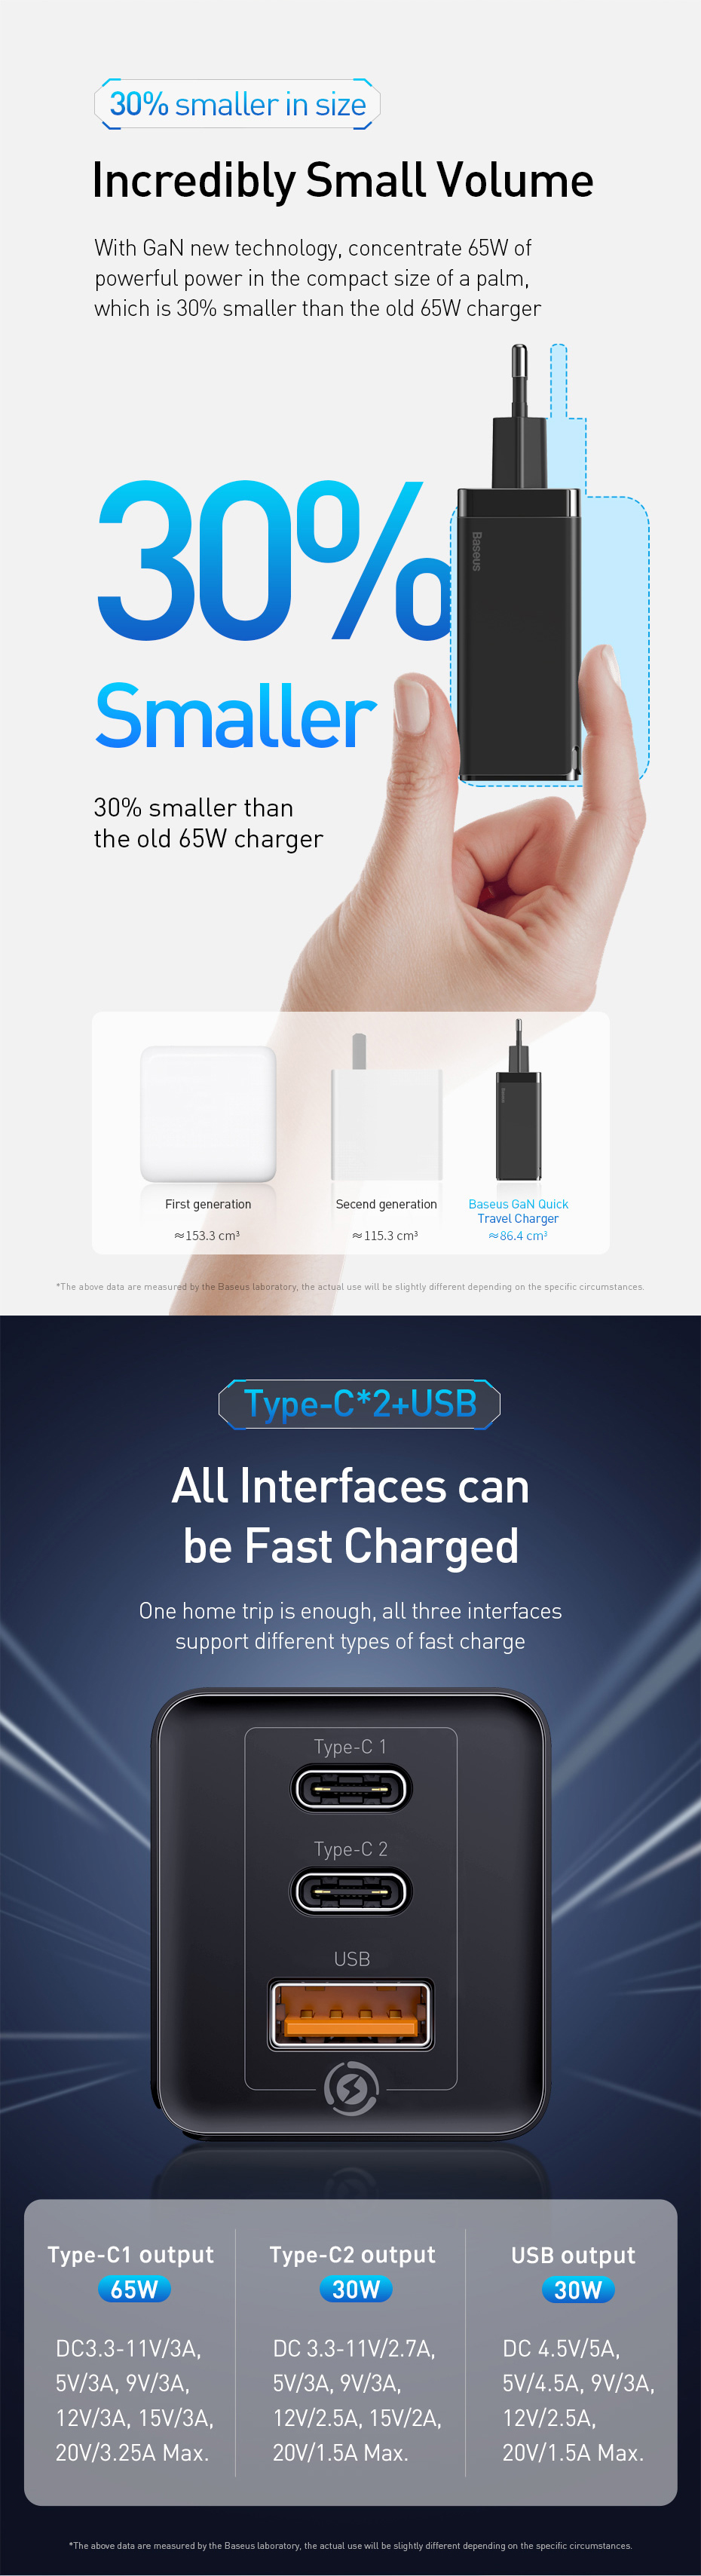 Baseus GaN 65W QC4.0 PD3.0 Triple Output 2*Type-C 1*USB Mini Wall Charger Universal Travel Charger EU US Plug for Samsung S10 Matebook for iPhone 11 Pro Max Notebook Tablet HUAWEI P30Pro Xiaomi Redmi